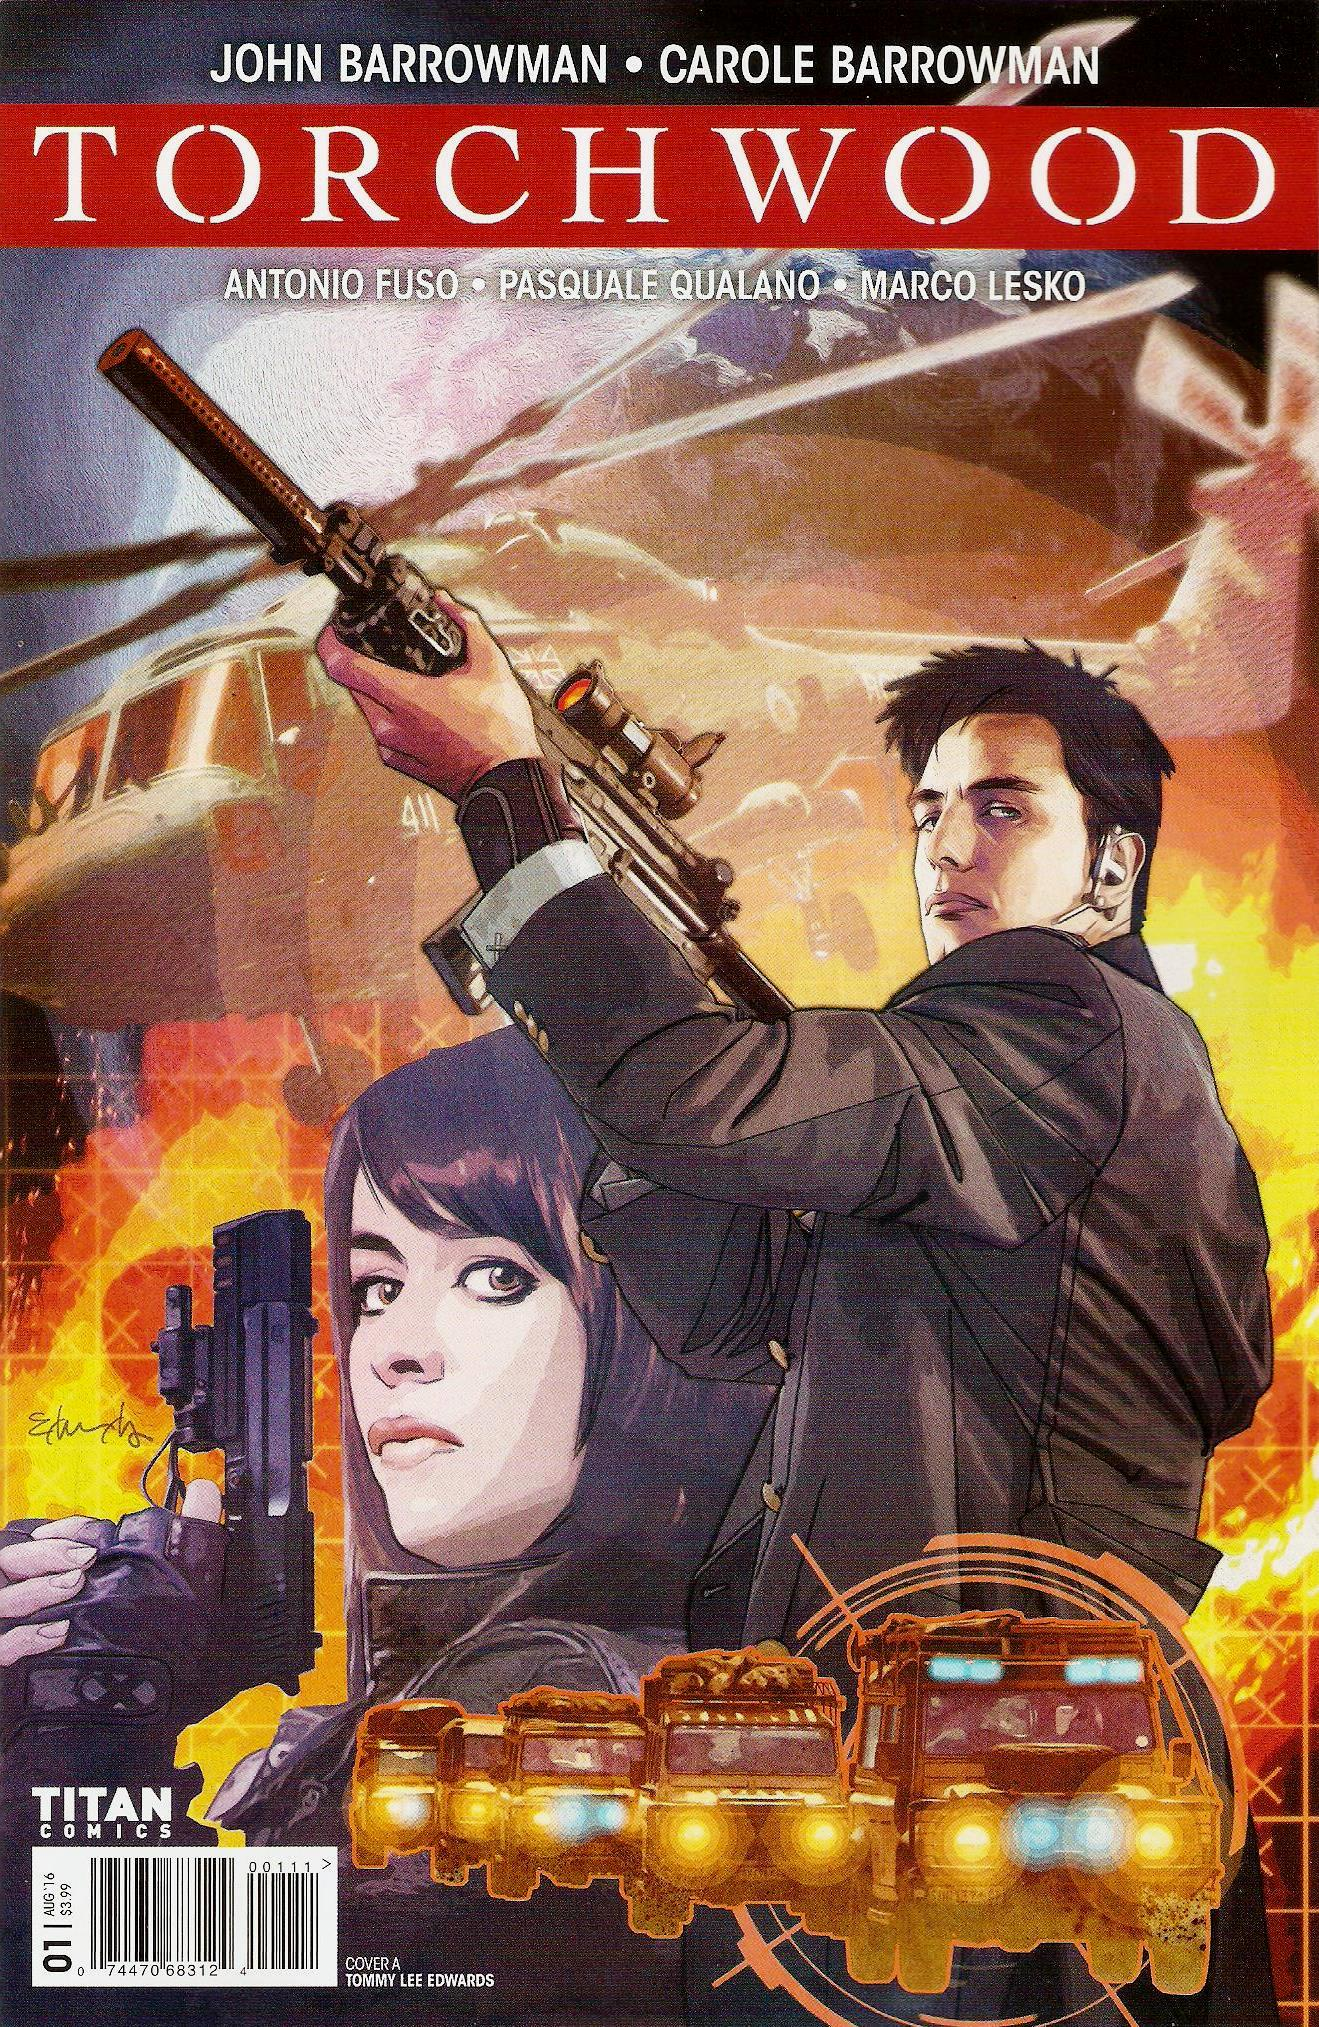 Torchwood issue 1a